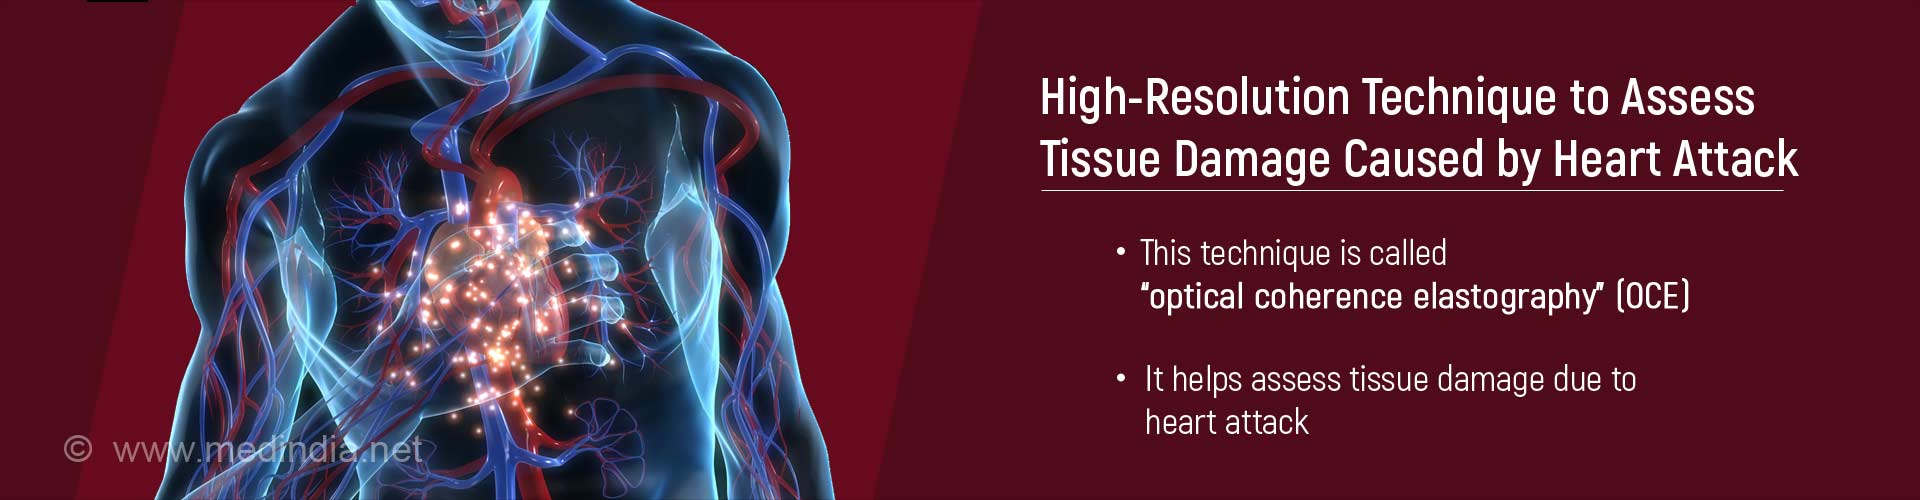 High-resolution technique to assess tissue damage caused by heart attack